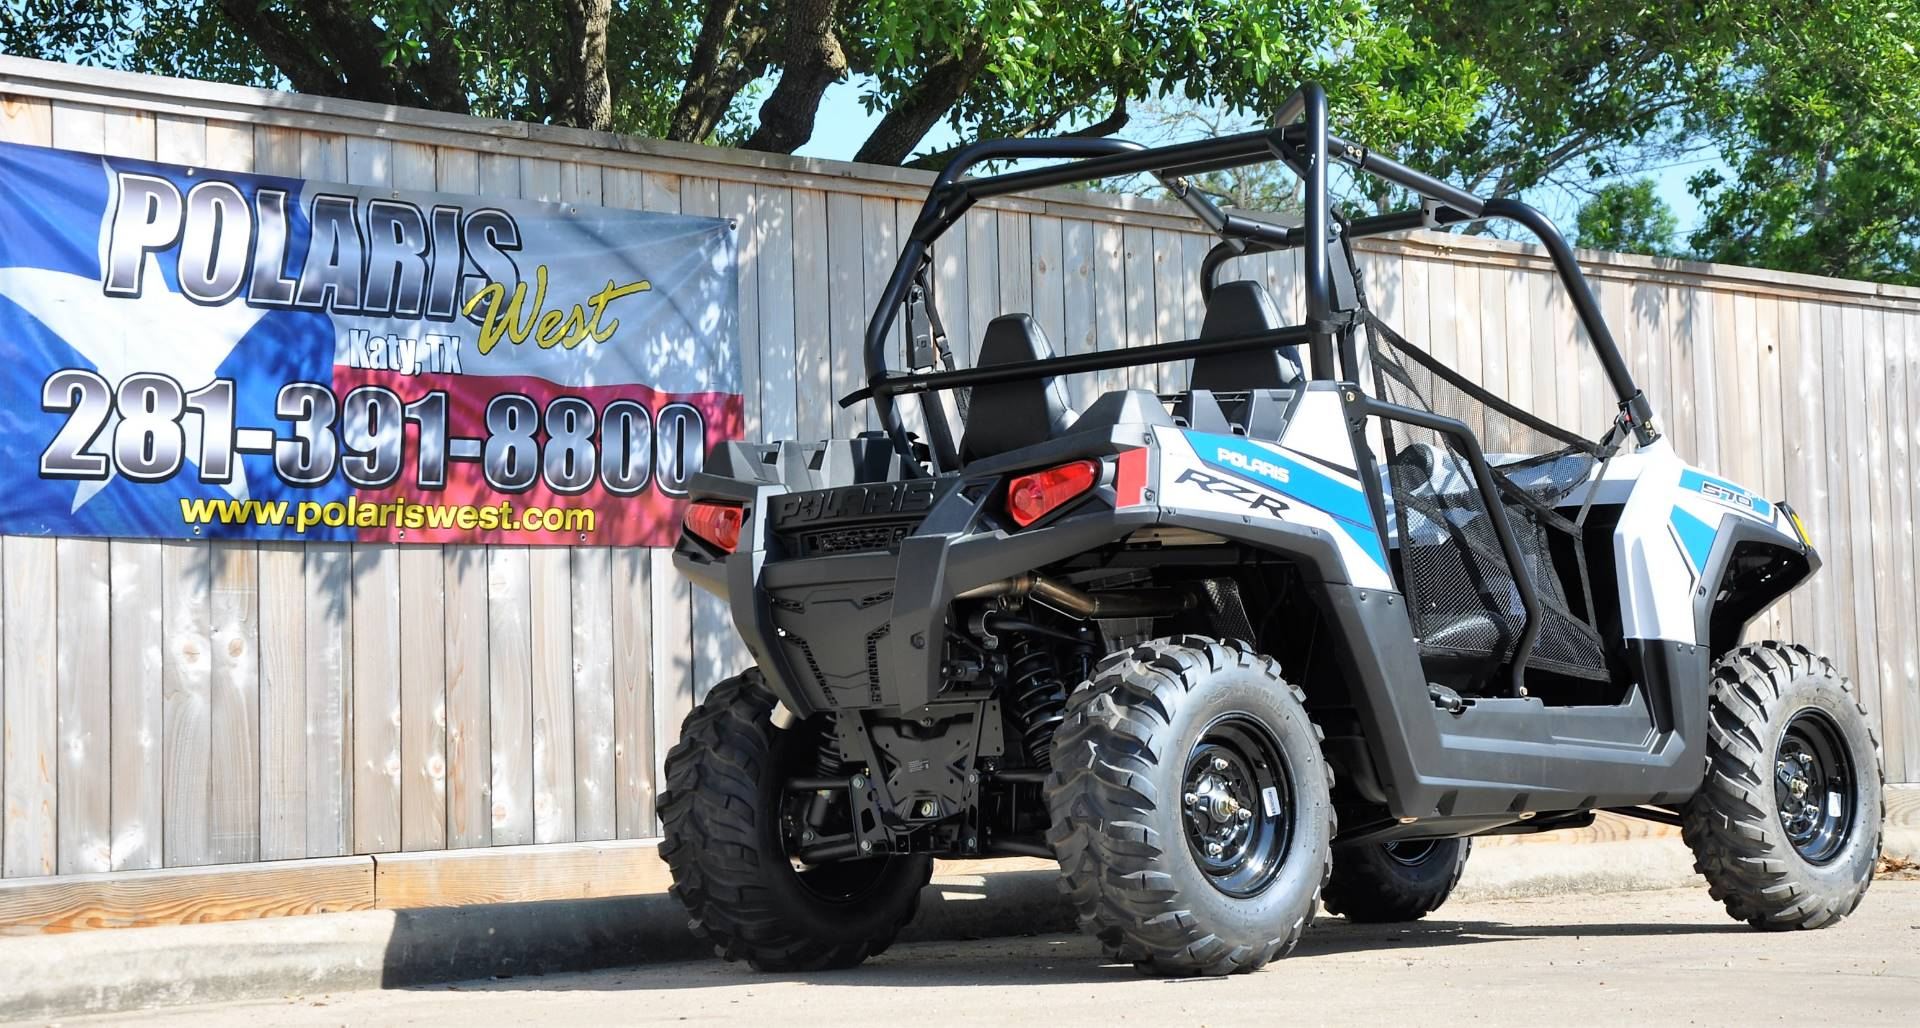 2017 Polaris RZR 570 in Katy, Texas